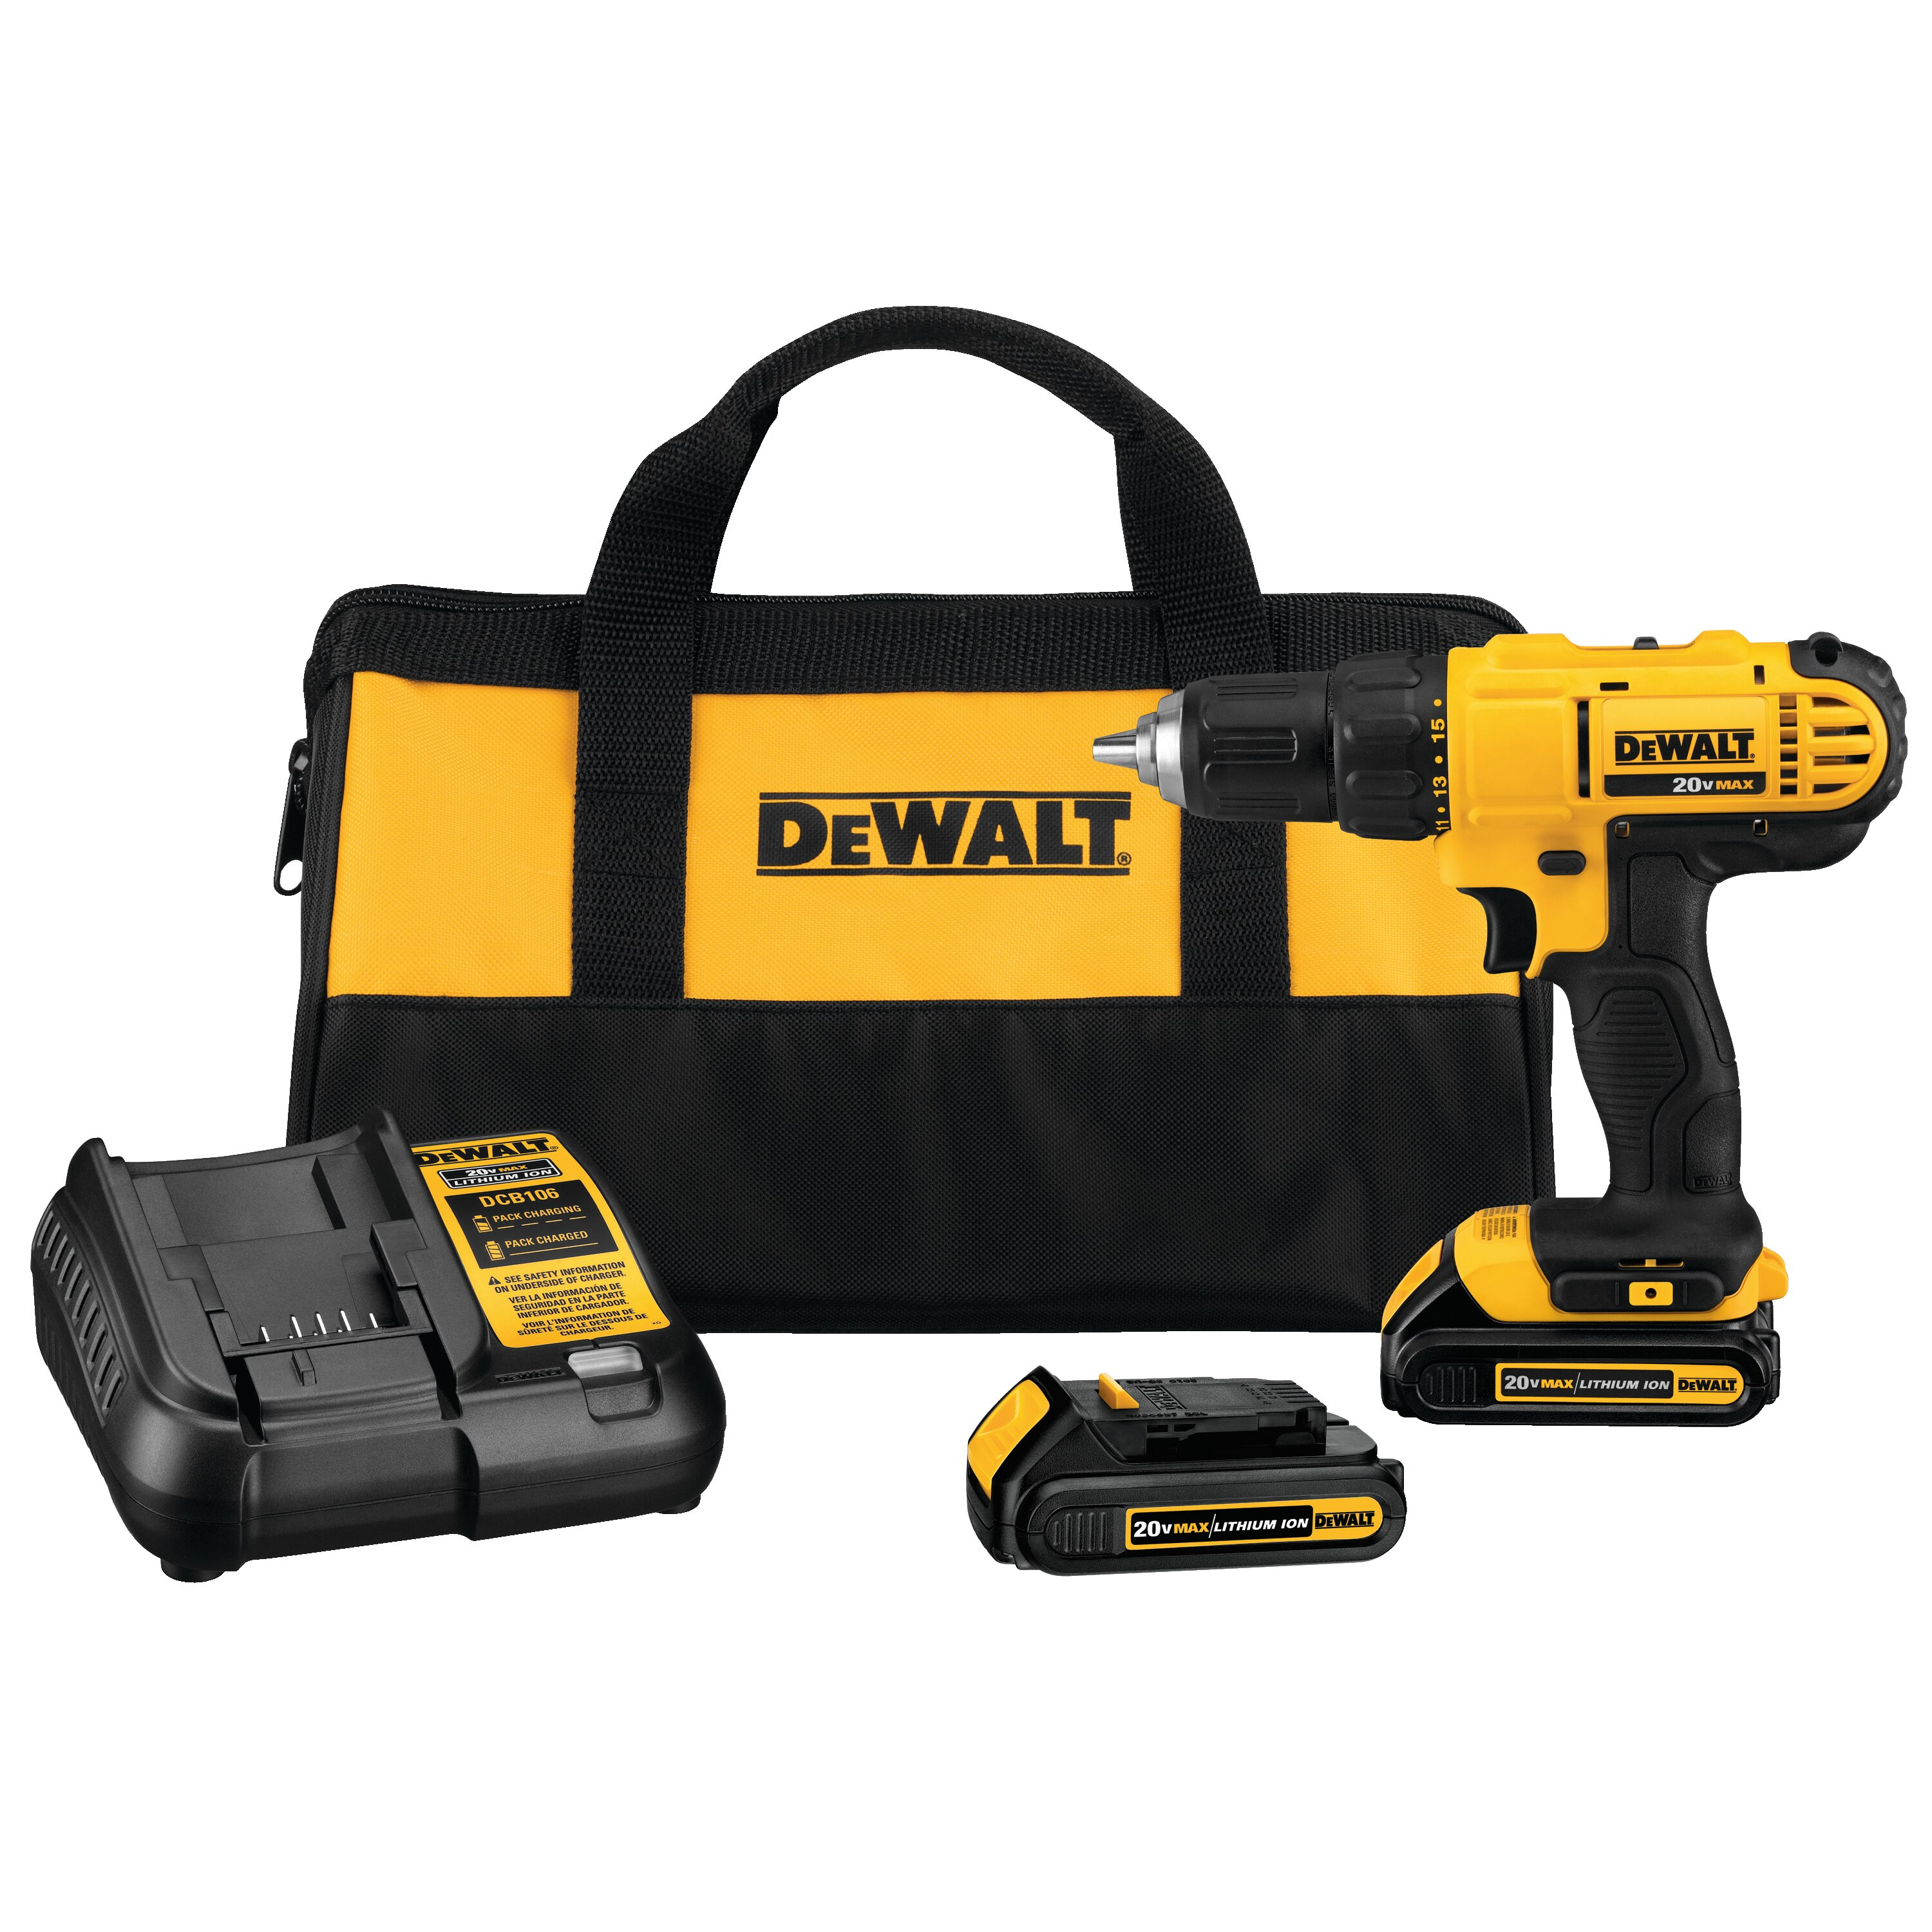 DEWALT - Ensemble de perceusevisseuse compact au lithiumion XR 20V MAX - DCD771C2